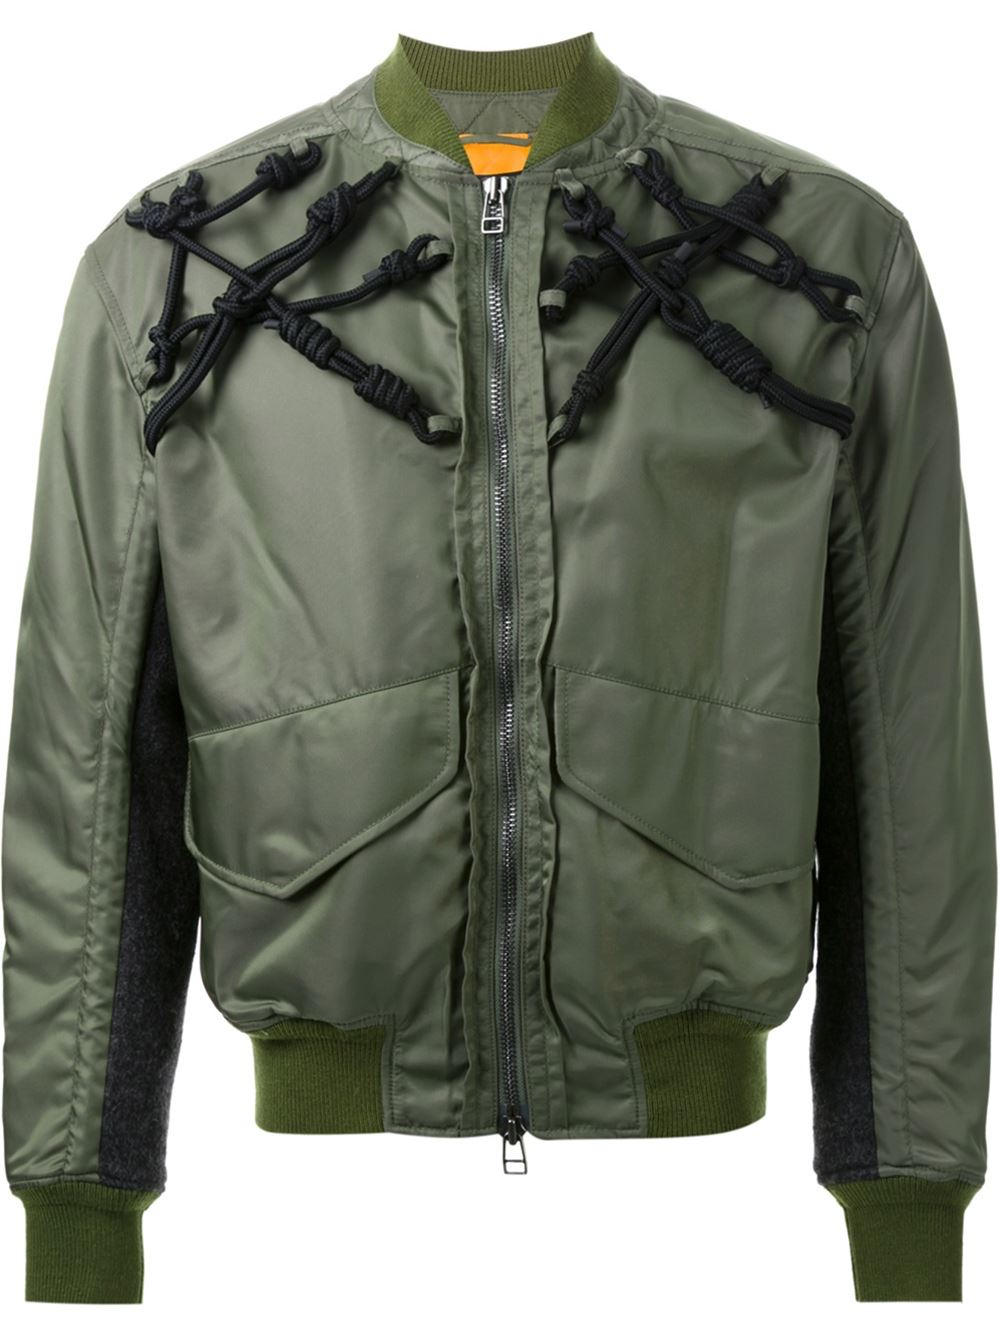 31-phillip-lim-green-knotted-strap-bomber-jacket-product-1-424231654-normal